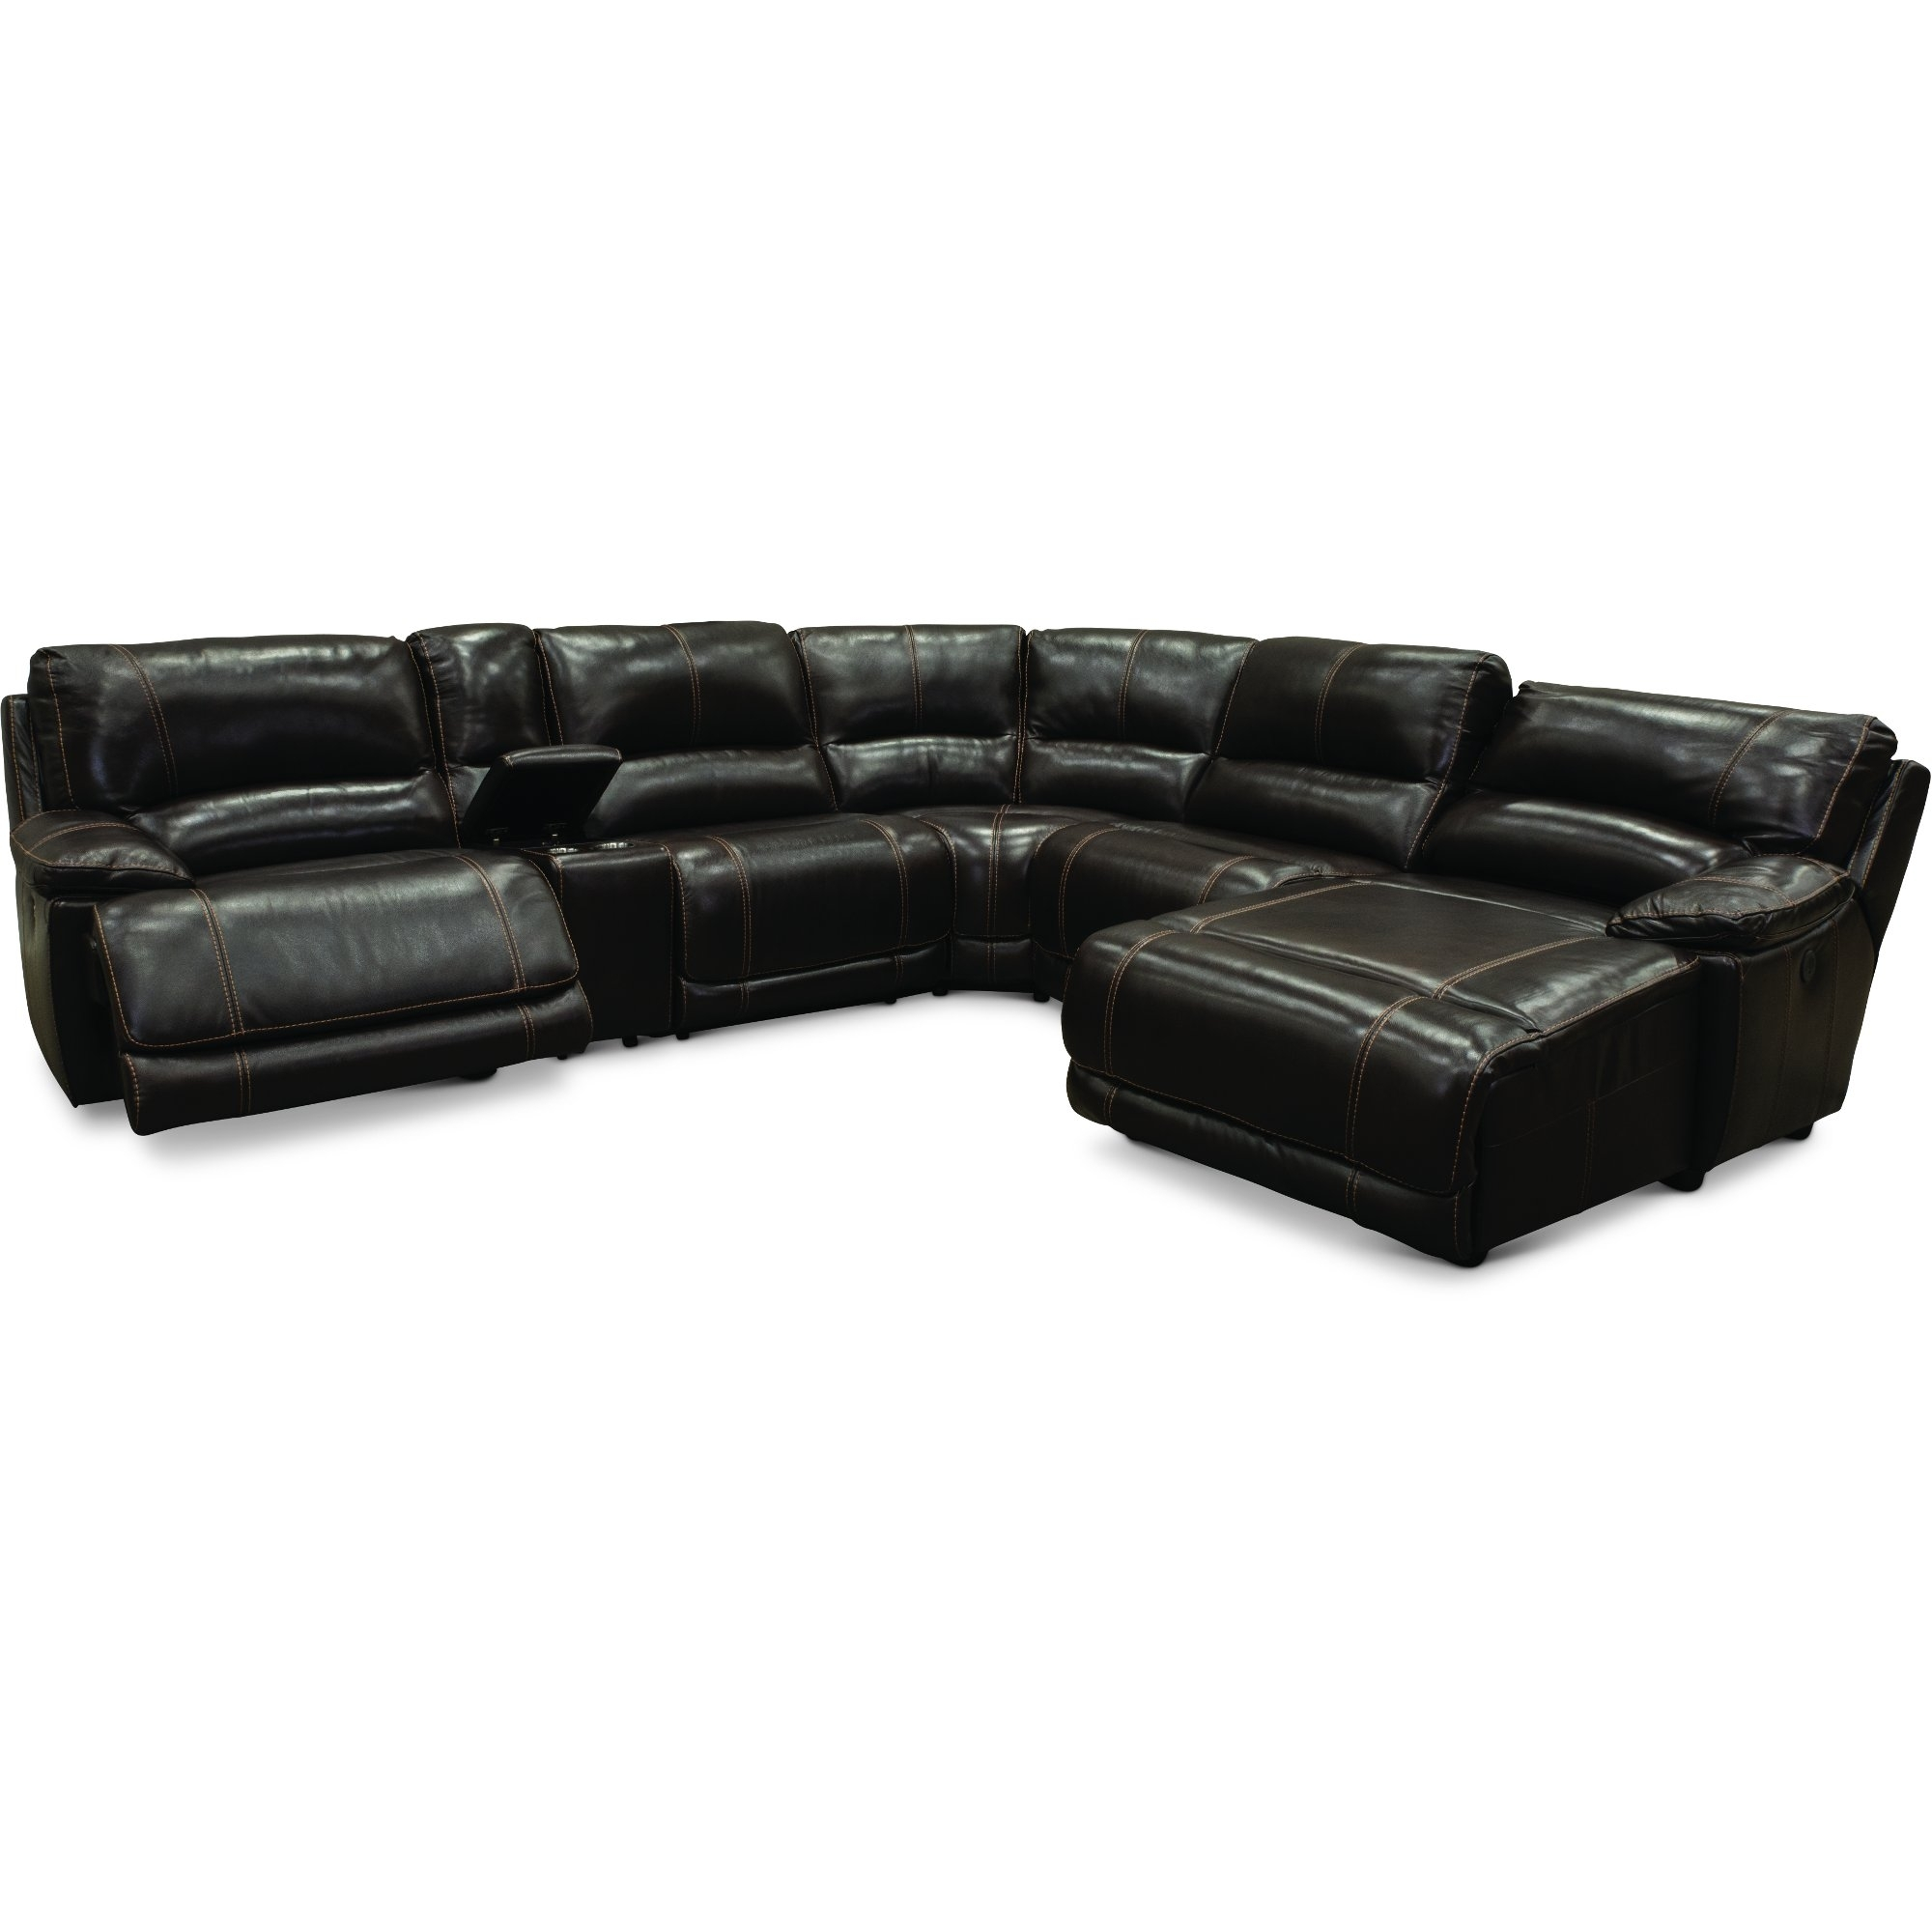 Brown 6 Piece Power Reclining Sectional Sofa – Brant | Rc Willey Throughout Denali Charcoal Grey 6 Piece Reclining Sectionals With 2 Power Headrests (Image 6 of 25)